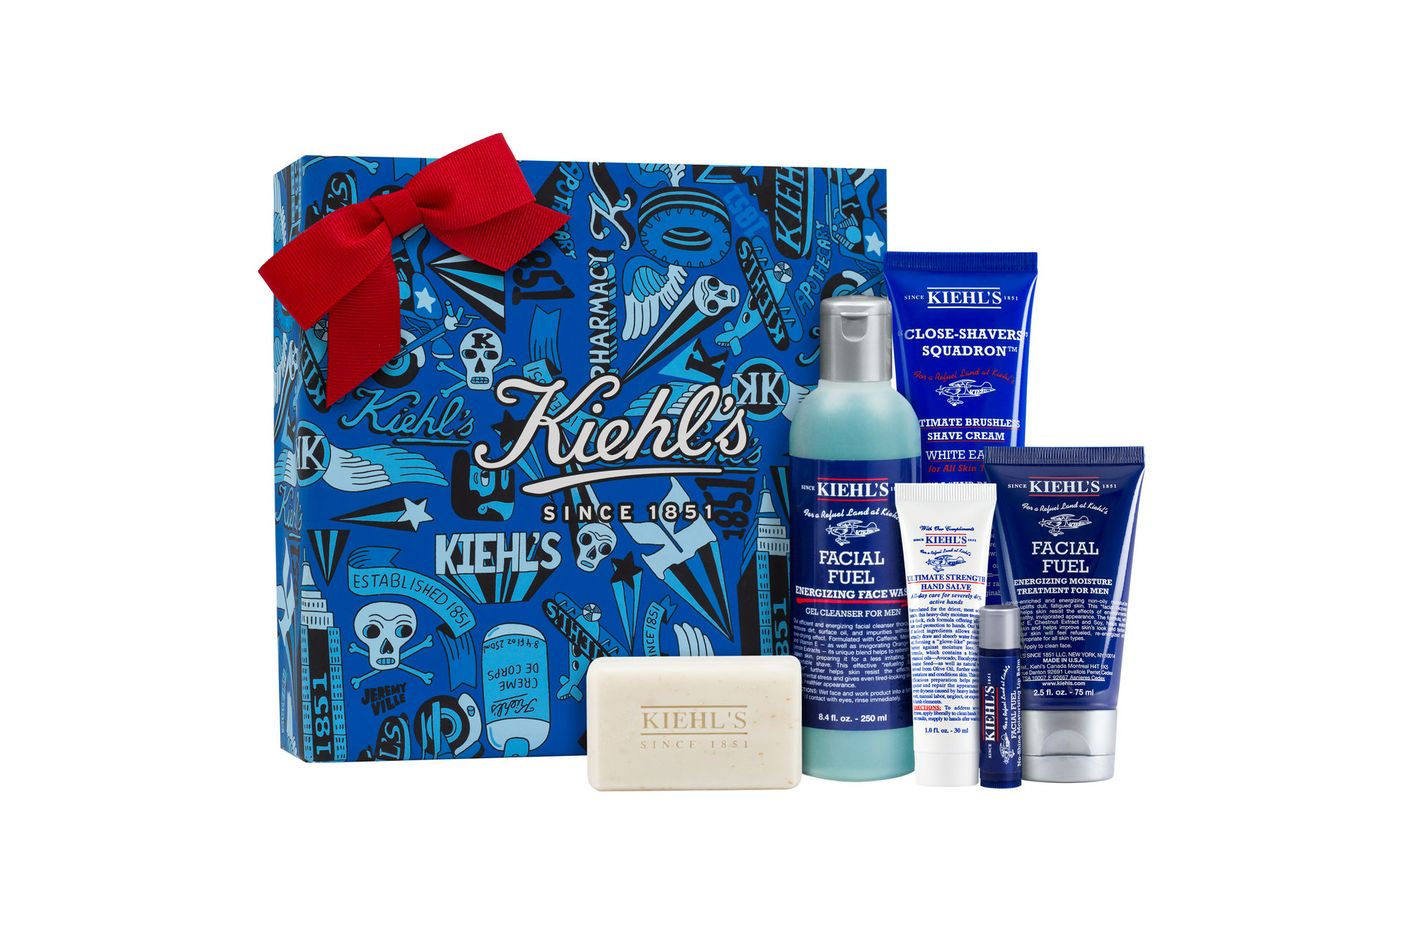 Kiehl's Healthy Skin for Him